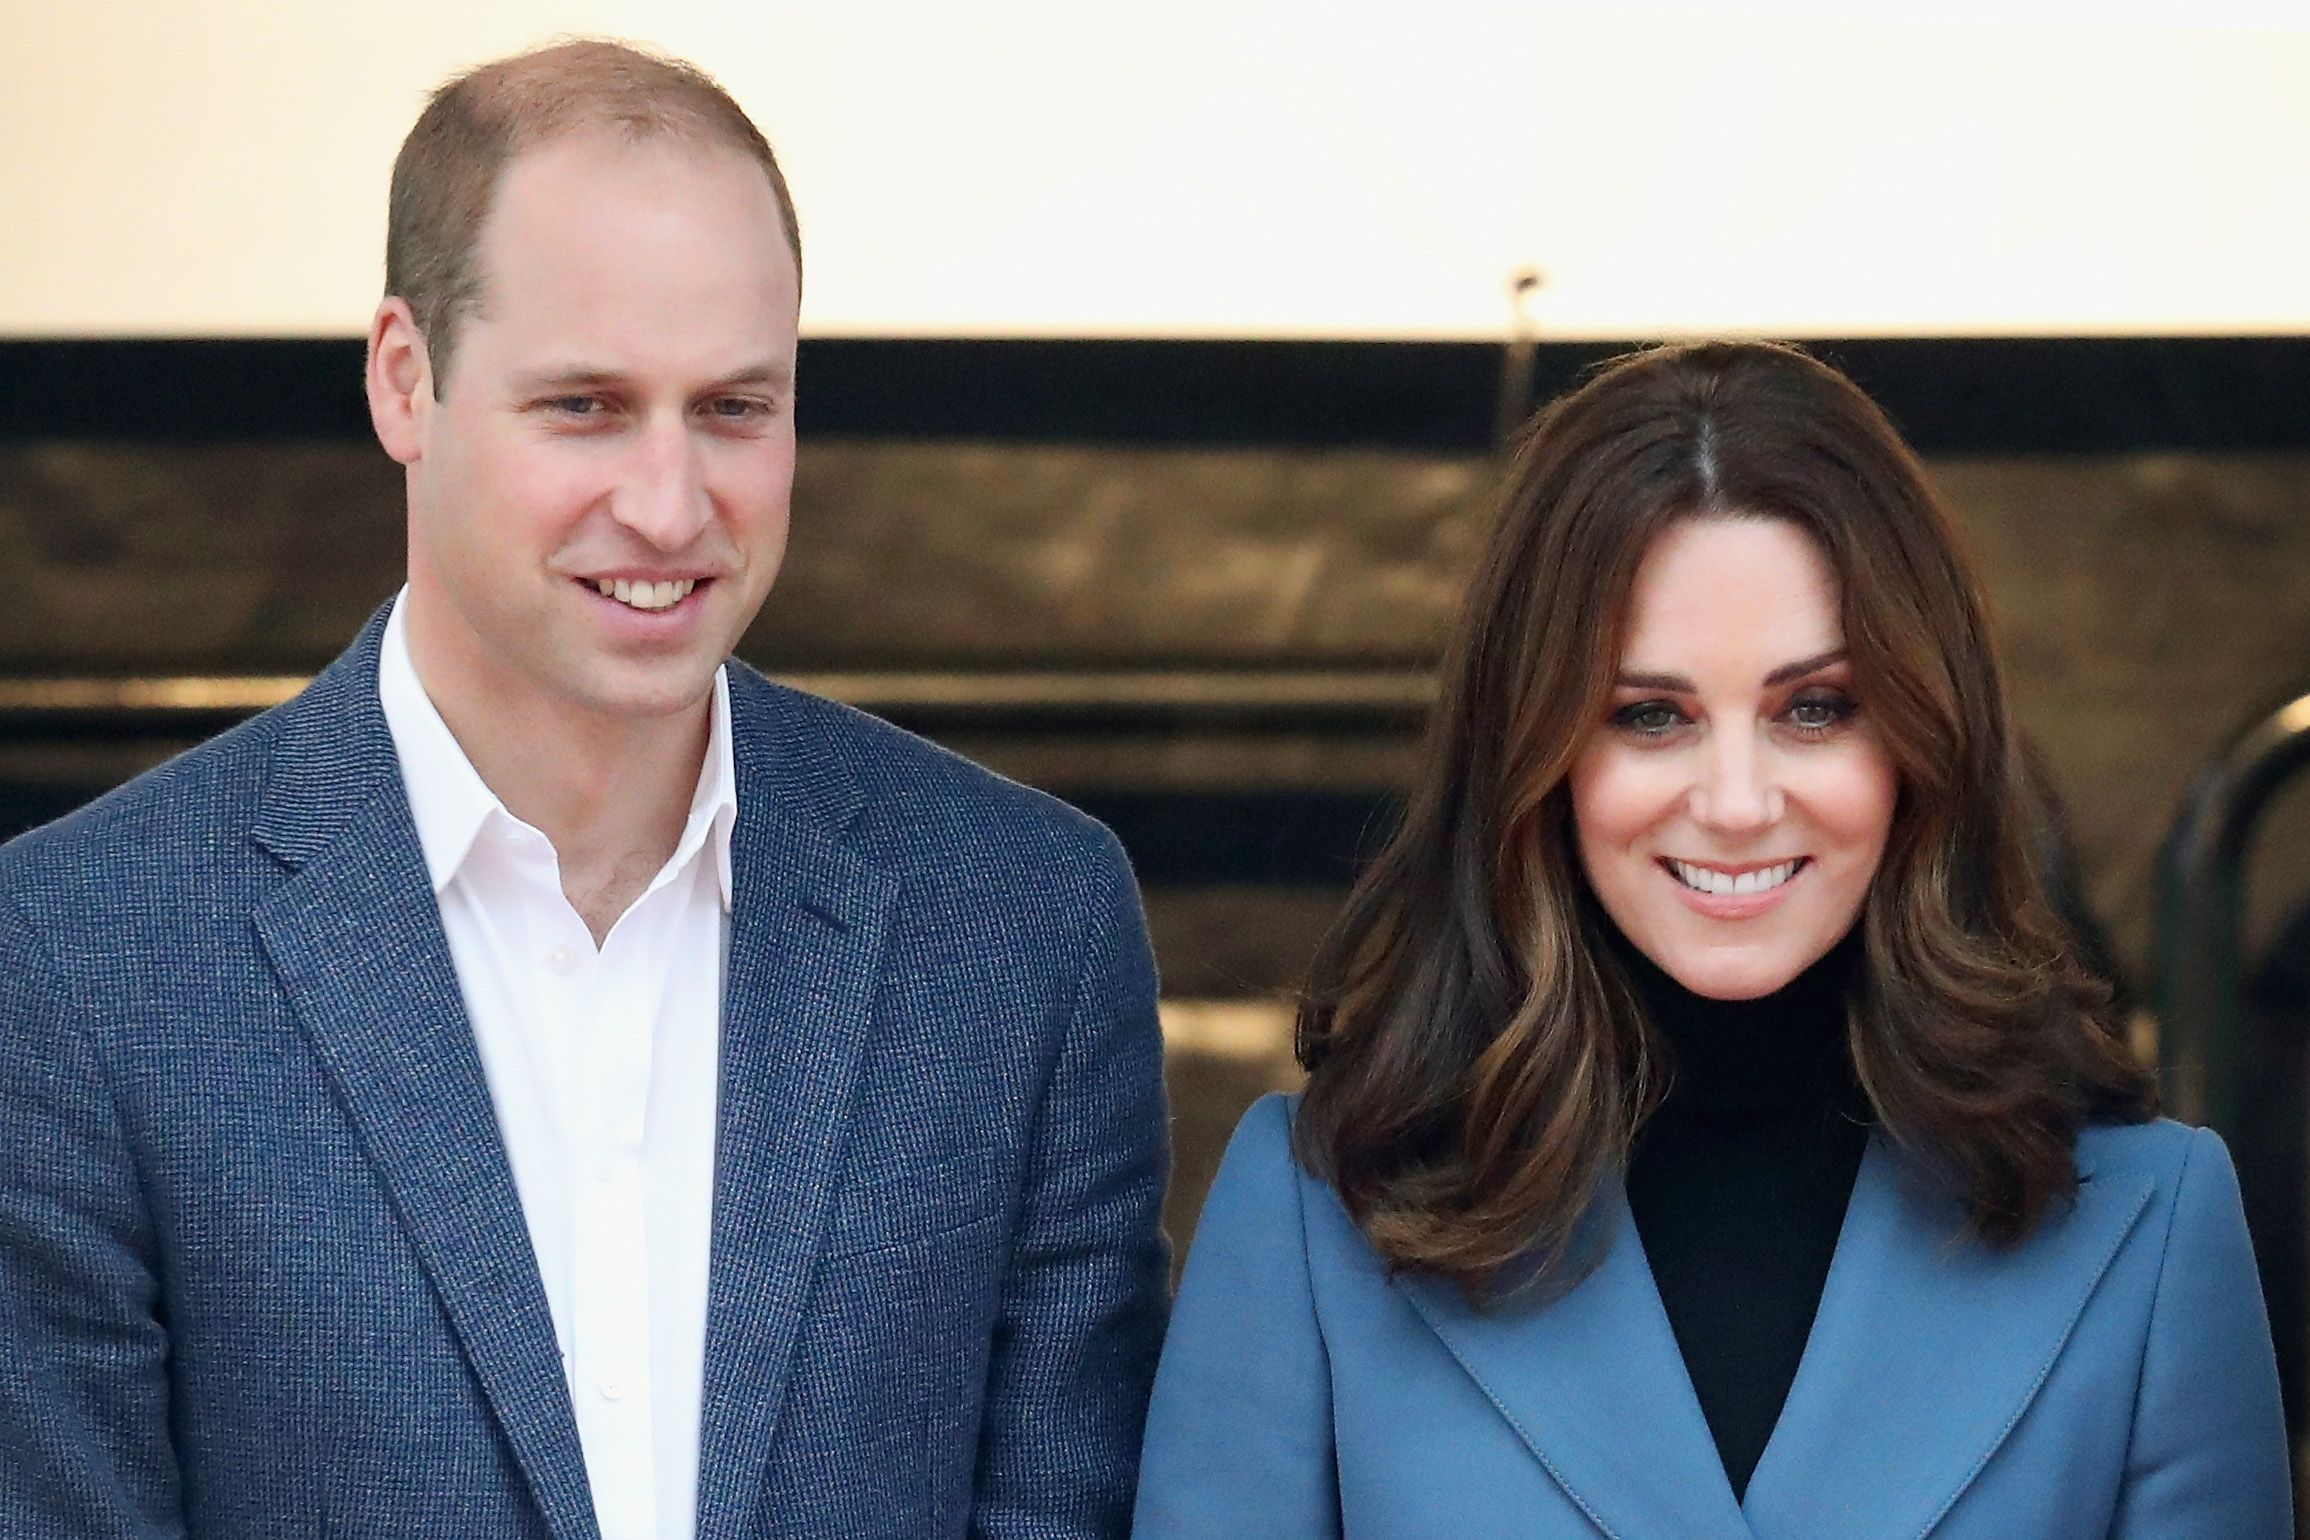 Prince William and Kate Middleton at the Coach Core graduation ceremony for more than 150 Coach Core apprentices at The London Stadium on October 18, 2017 | Photo: Getty Images